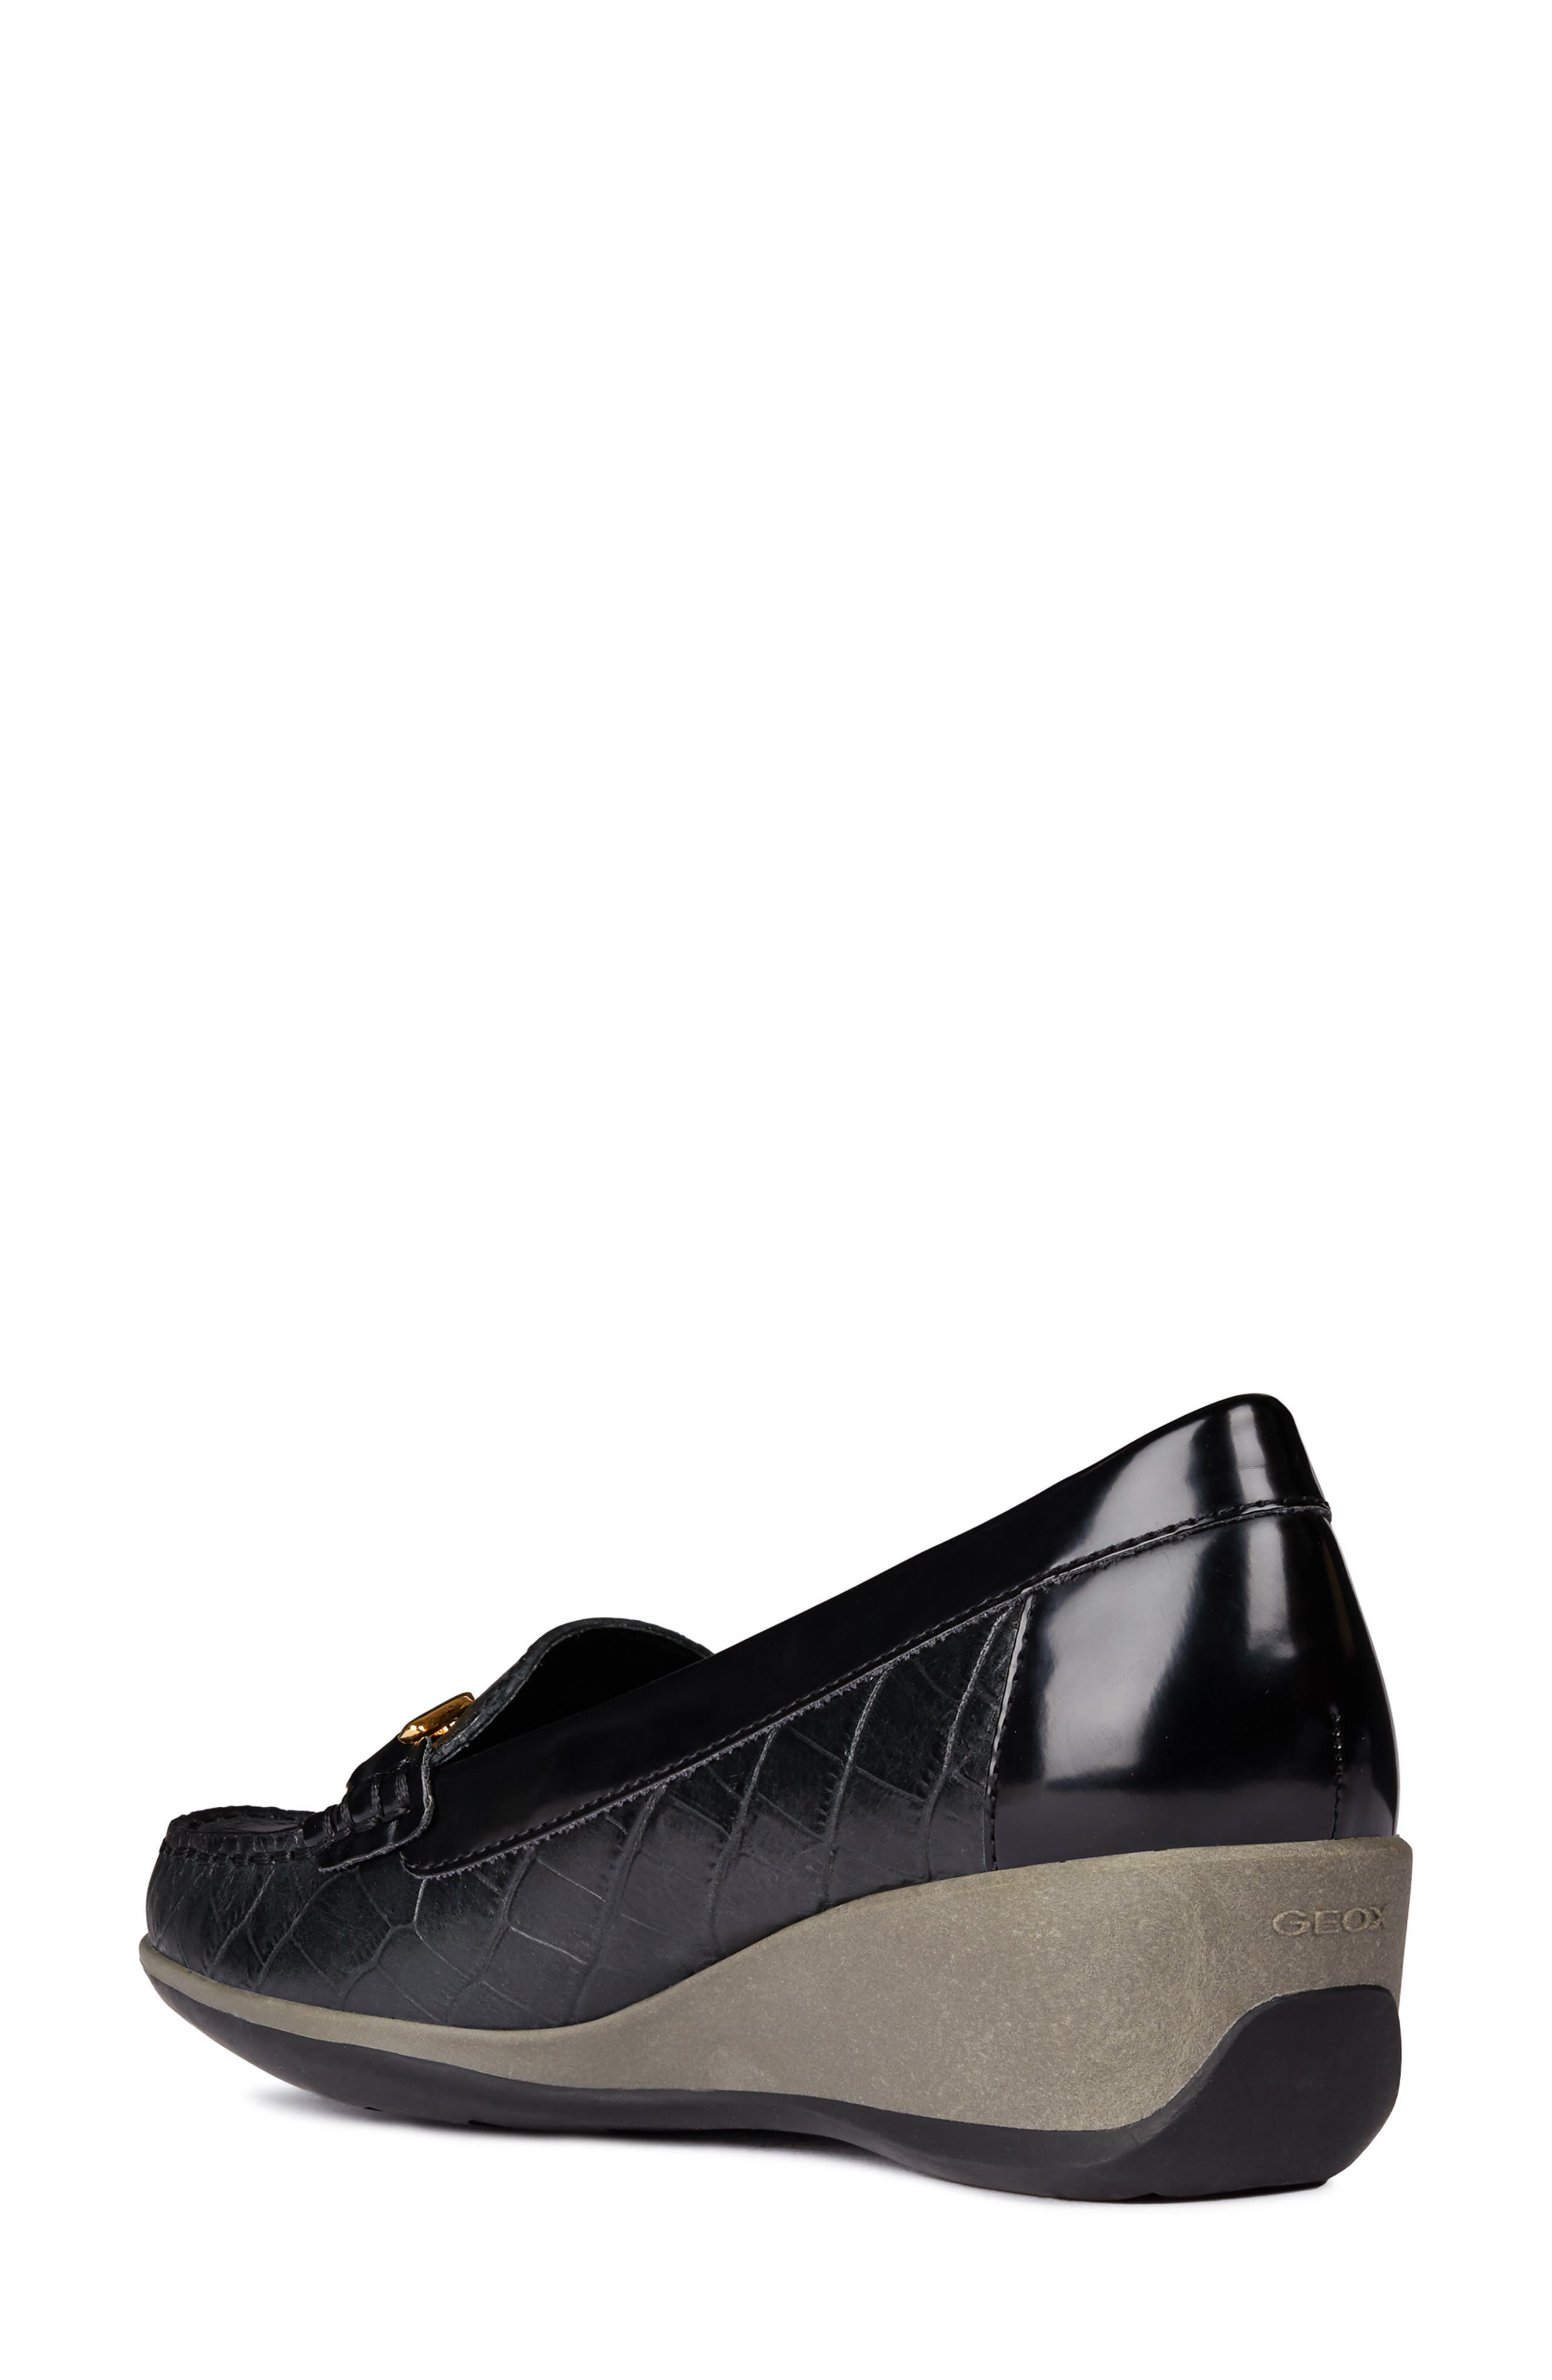 Arethea Loafer Wedge,                             Alternate thumbnail 2, color,                             BLACK LEATHER